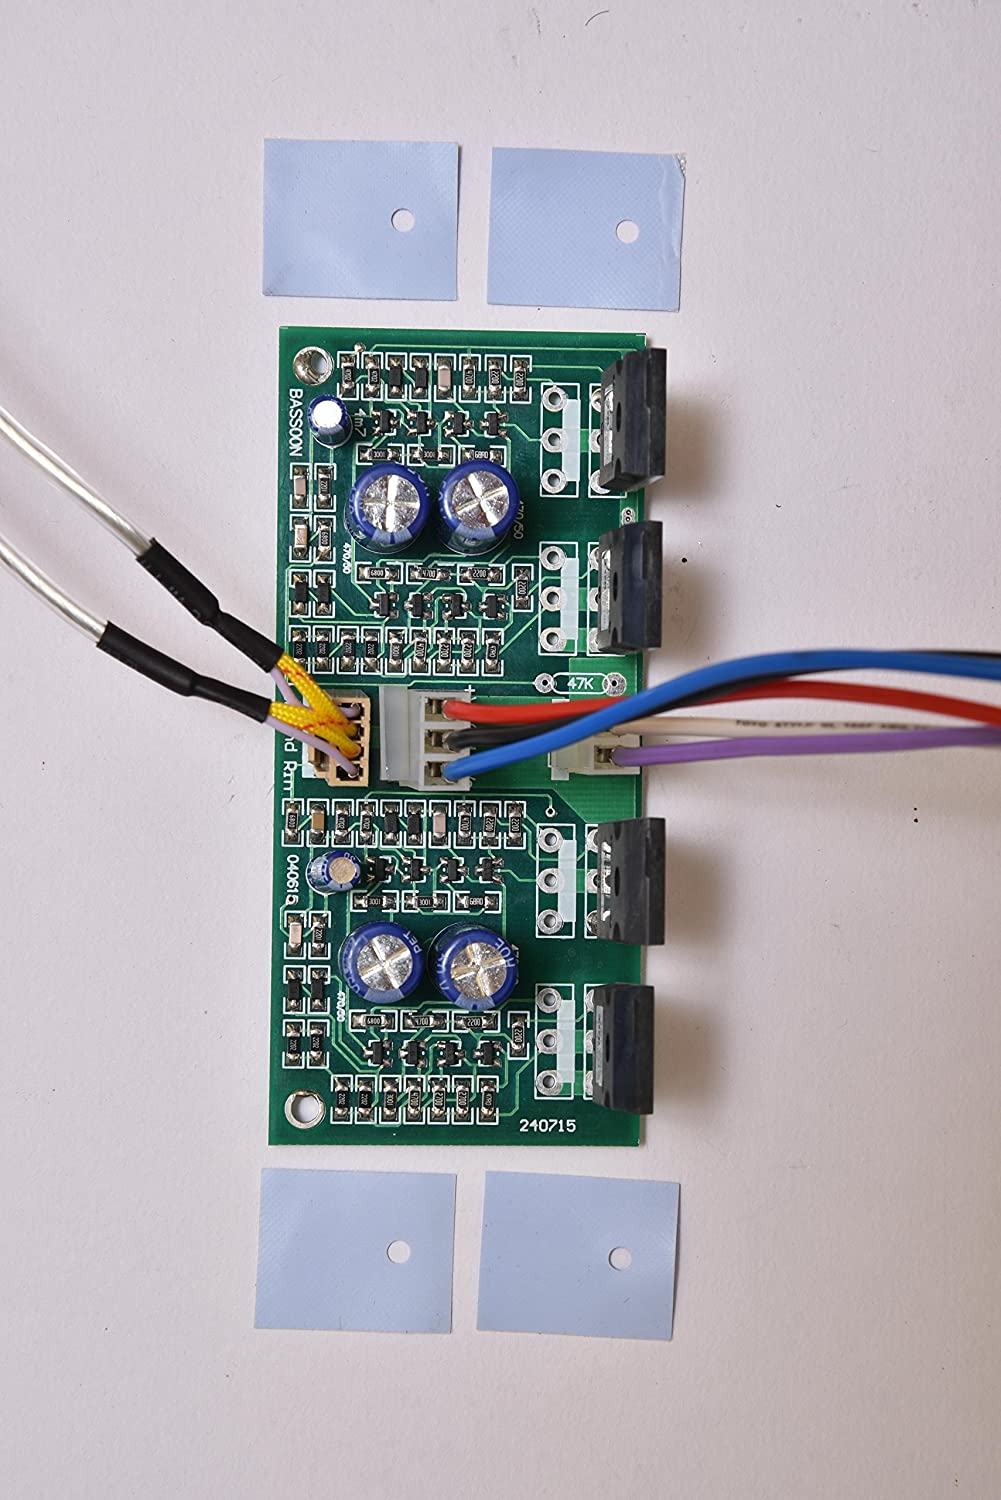 Bassoon Mosfet Stereo Amplifier Electronics Circuit Audio 2channel Subwoofer Board